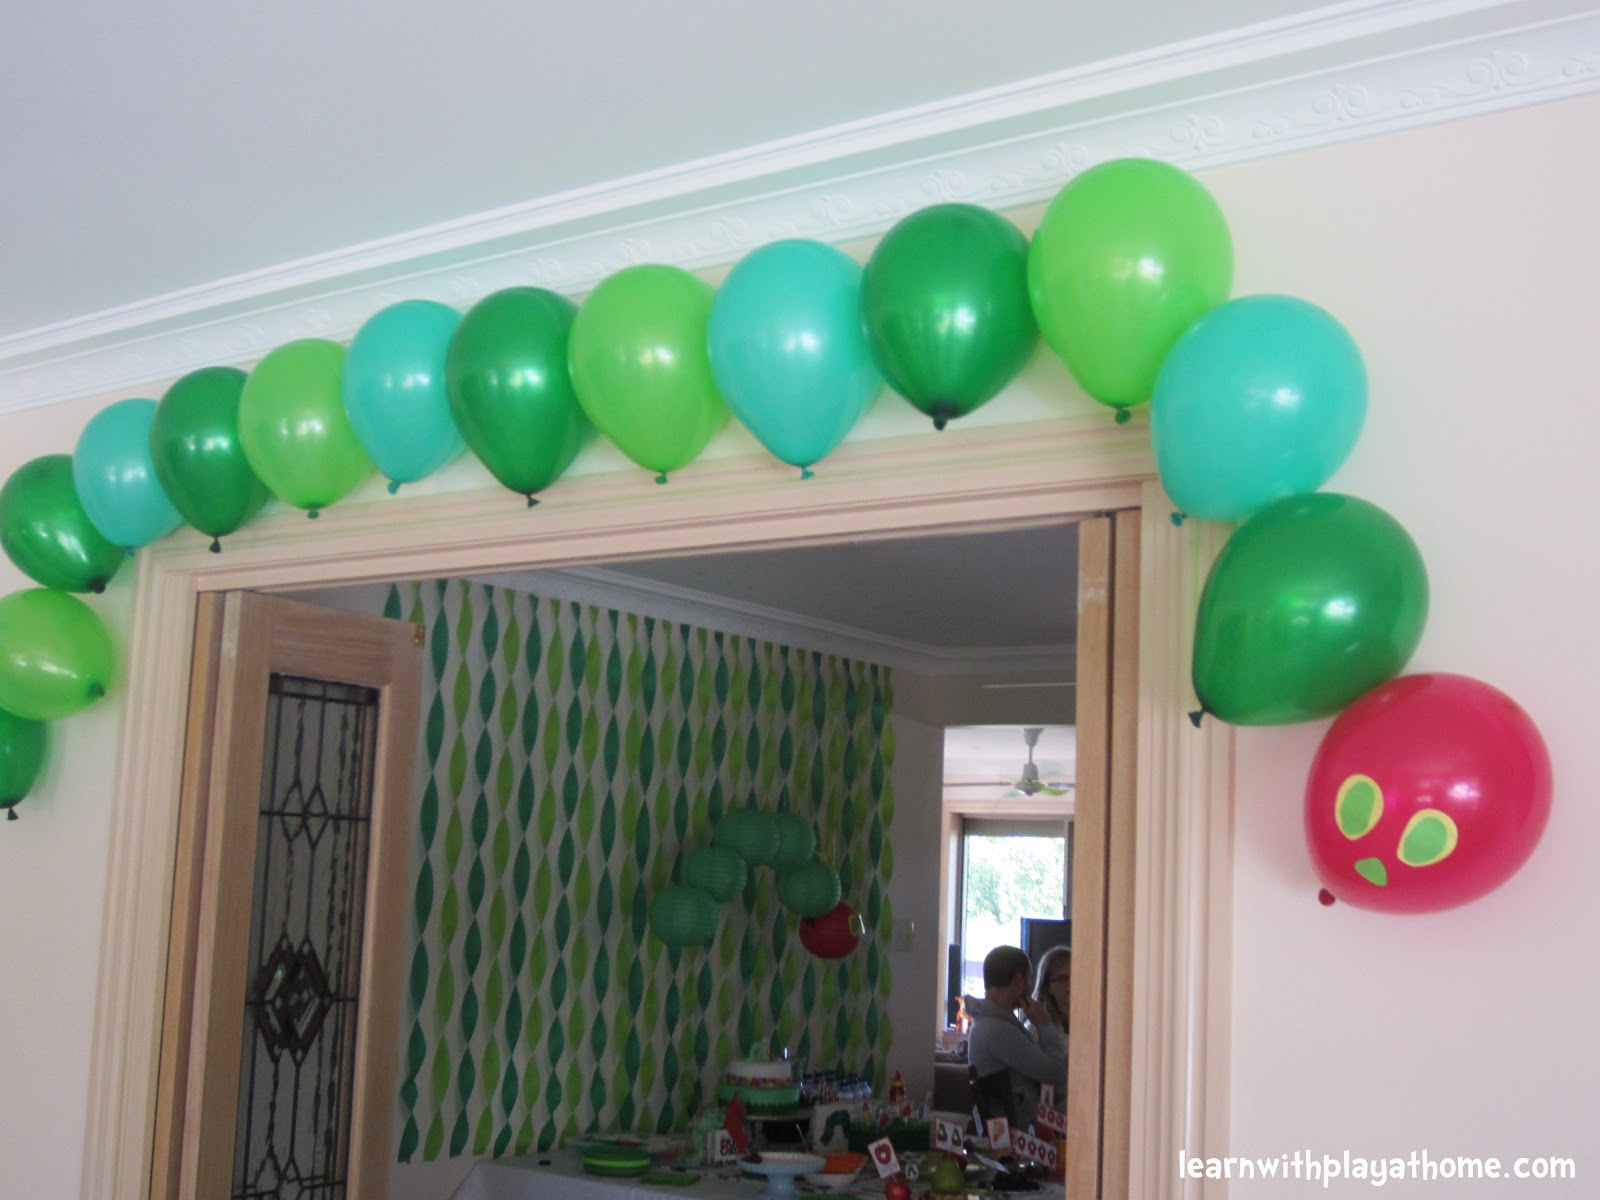 Learn with play at home diy party decorations for Balloon decoration at home